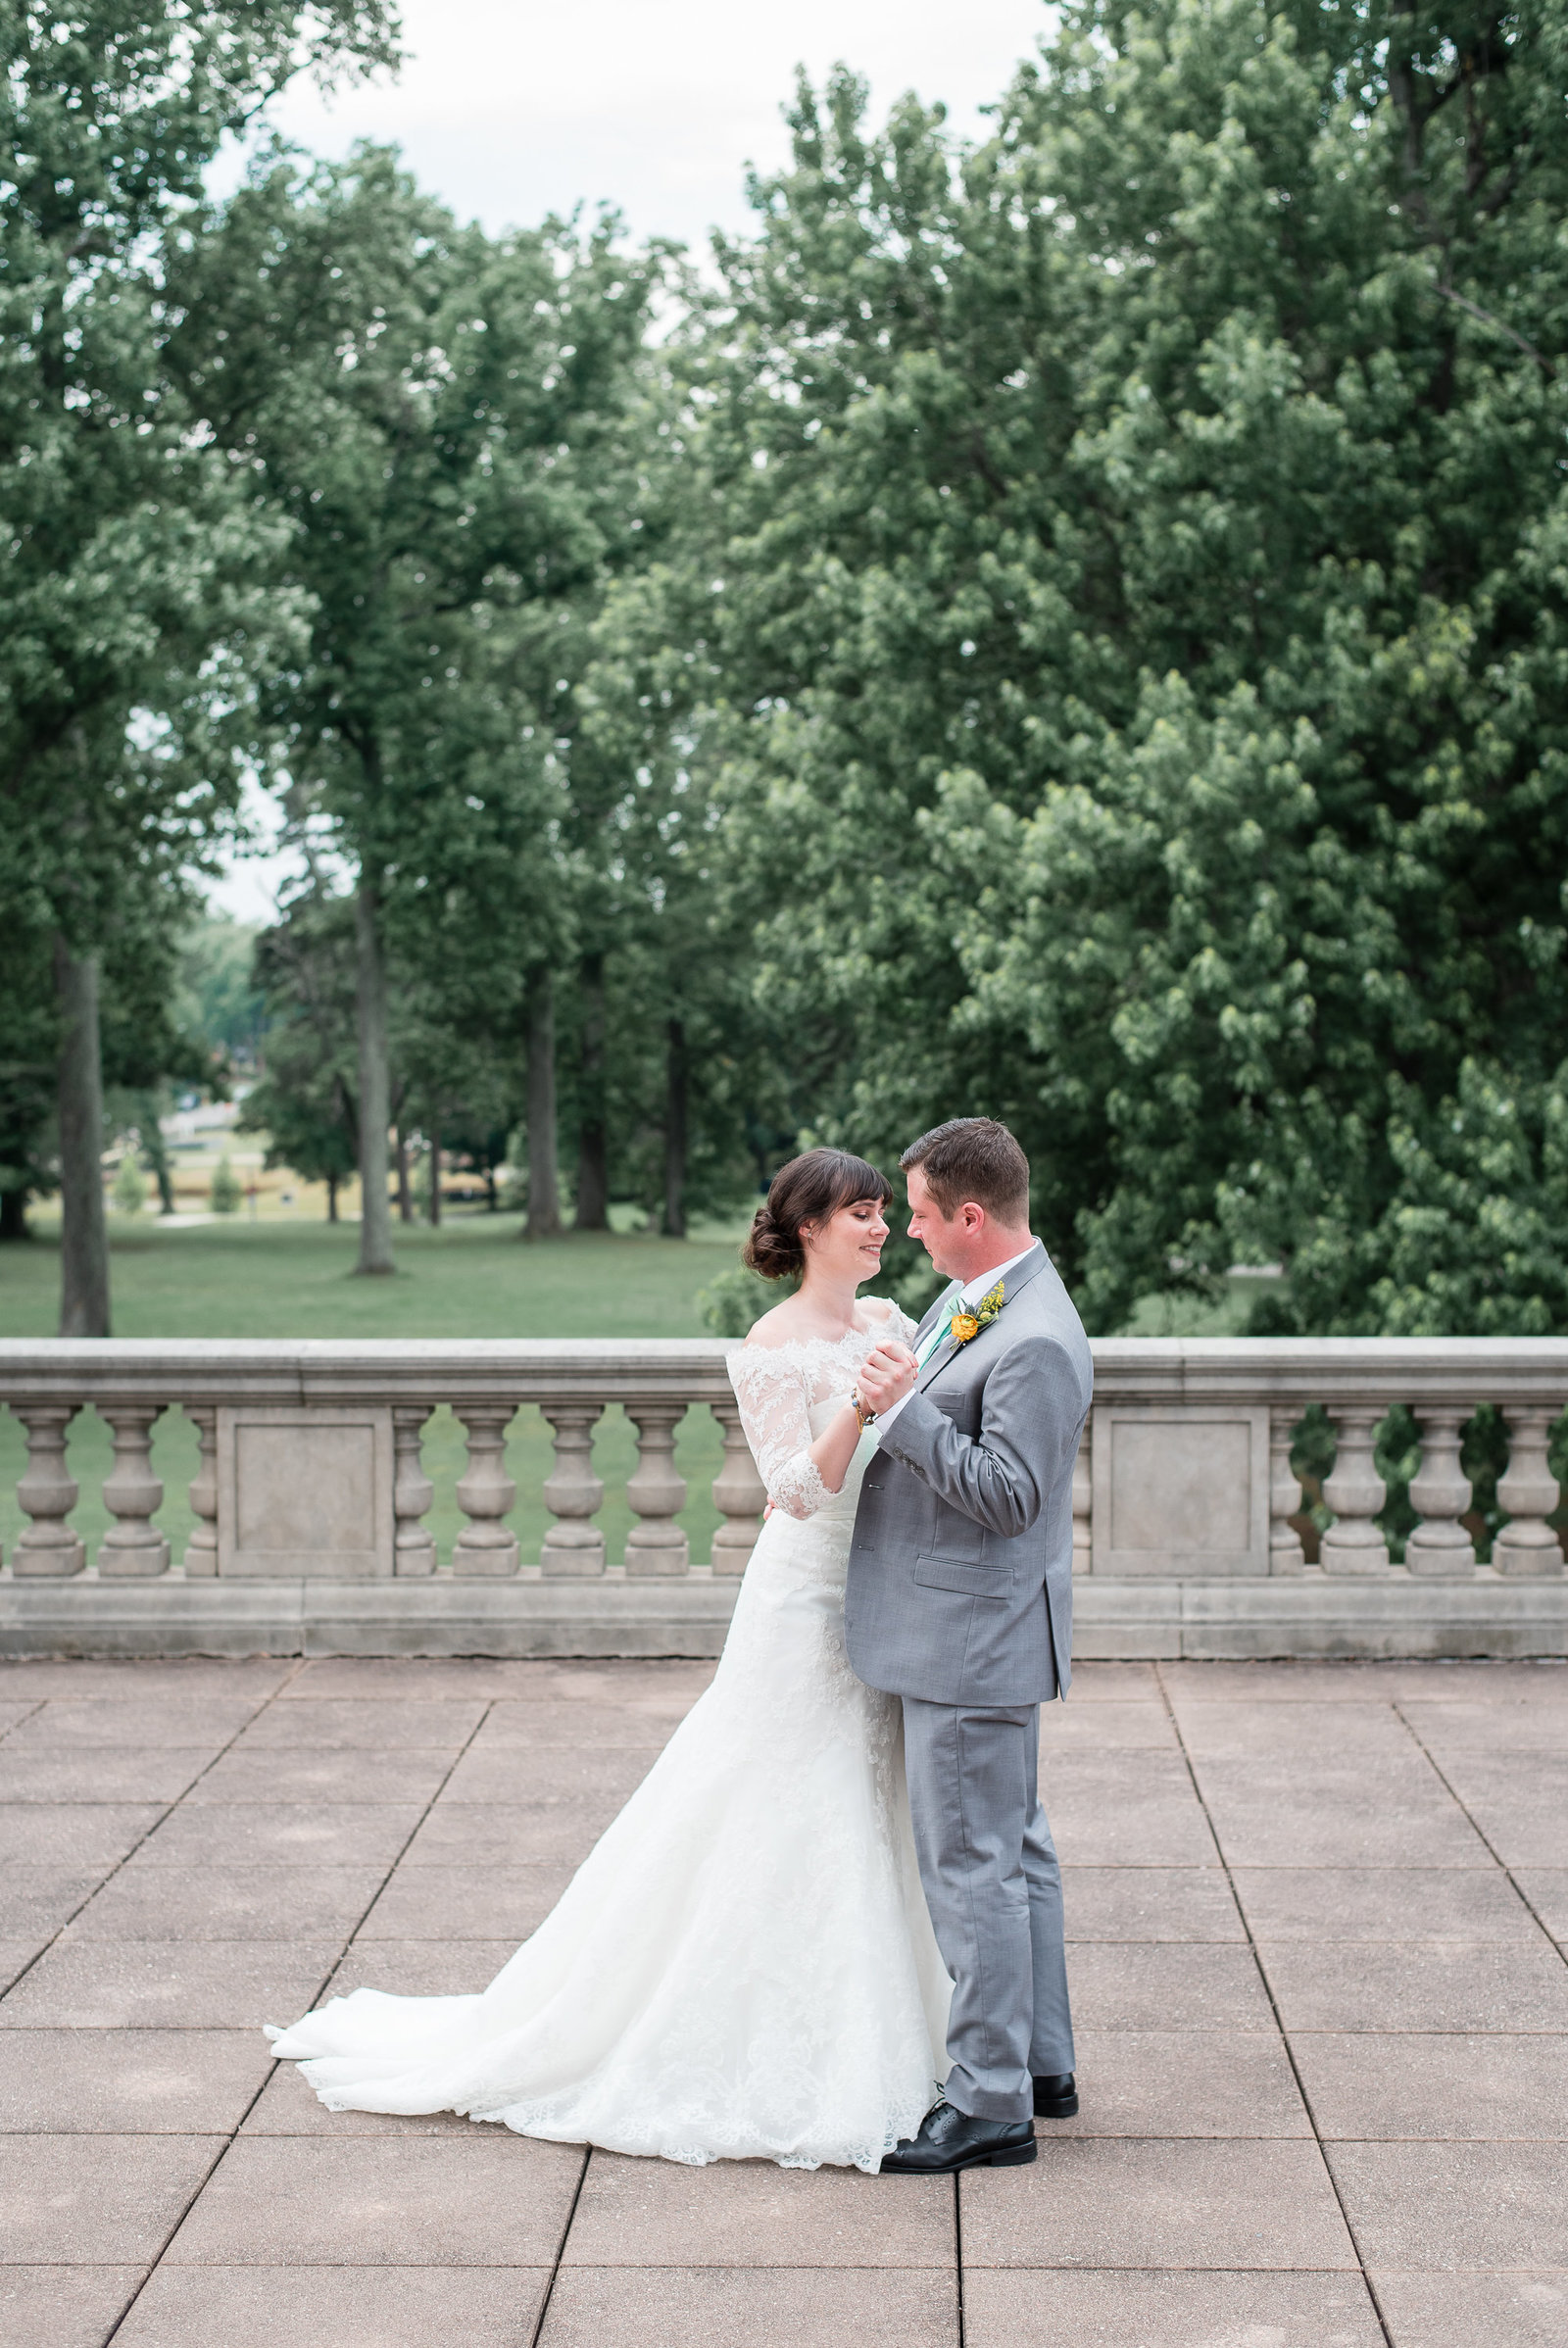 Libby-and-Brian-Bolling-Haxall-House-Wedding-Melissa-Desjardins-Photography-5